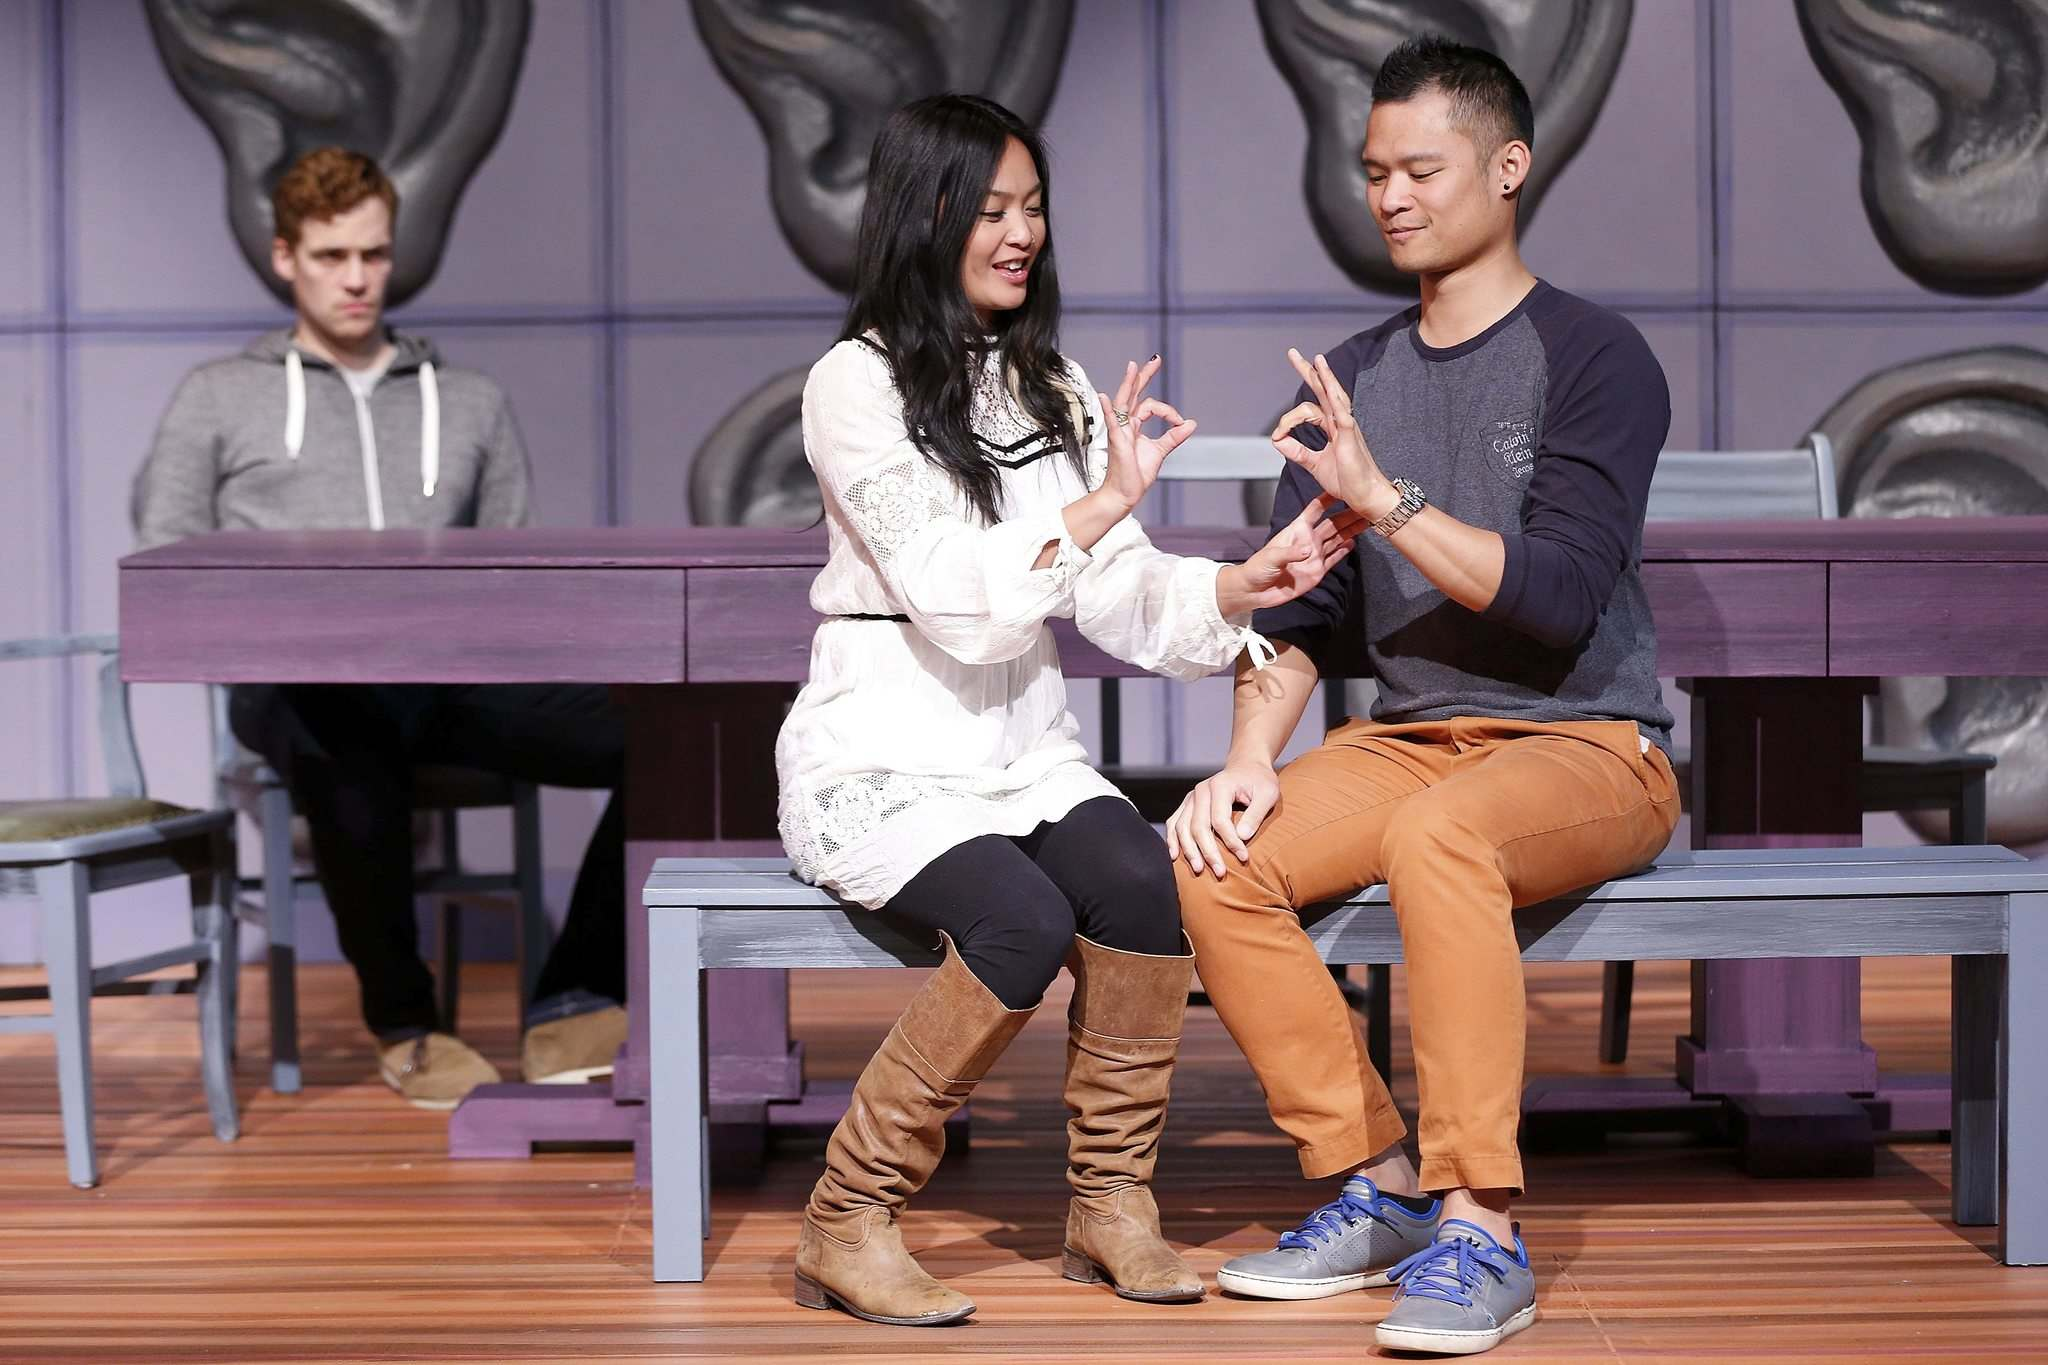 JOHN WOODS / WINNIPEG FREE PRESS</p><p>Stephanie Sy assists Jordan Sangalang (right) with his sign language as Ryan James Miller looks on during rehearsal of Winnipeg Jewish Theatre's Tribes.</p>